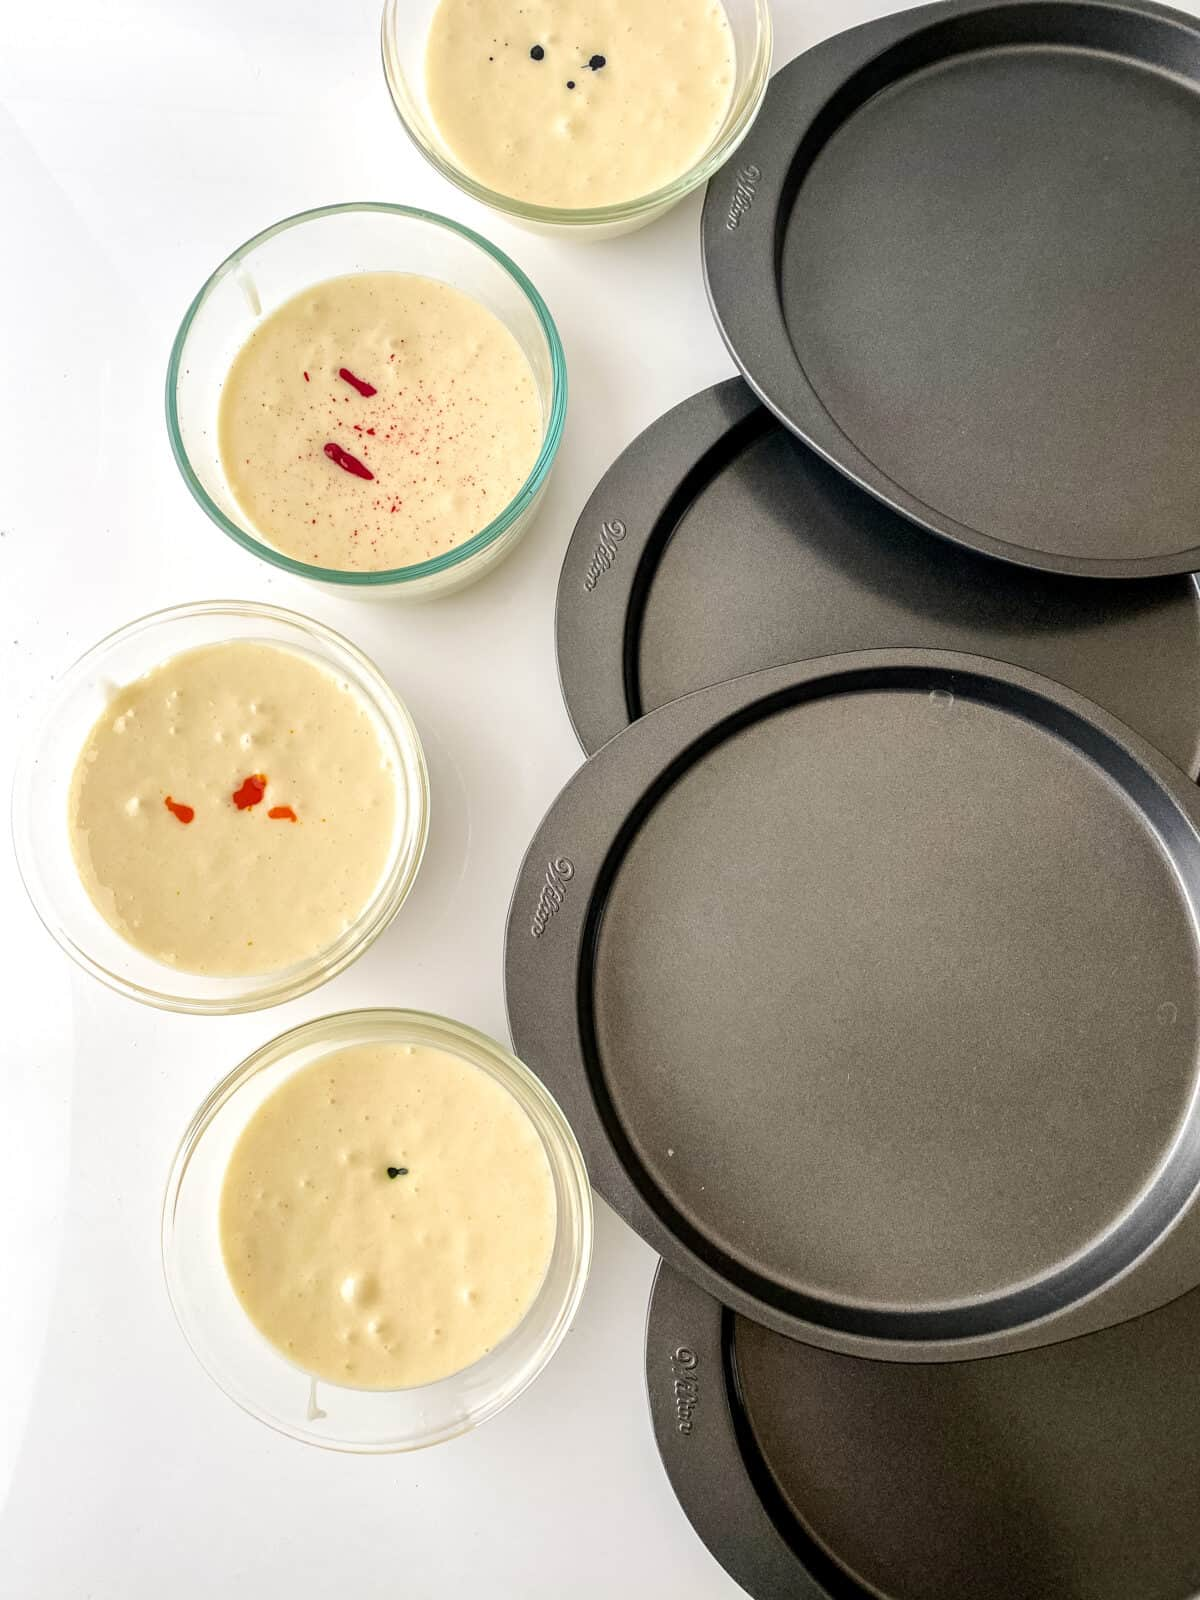 4 pans and four bowls of cake batter with food coloring in each one of them ready to be mixed